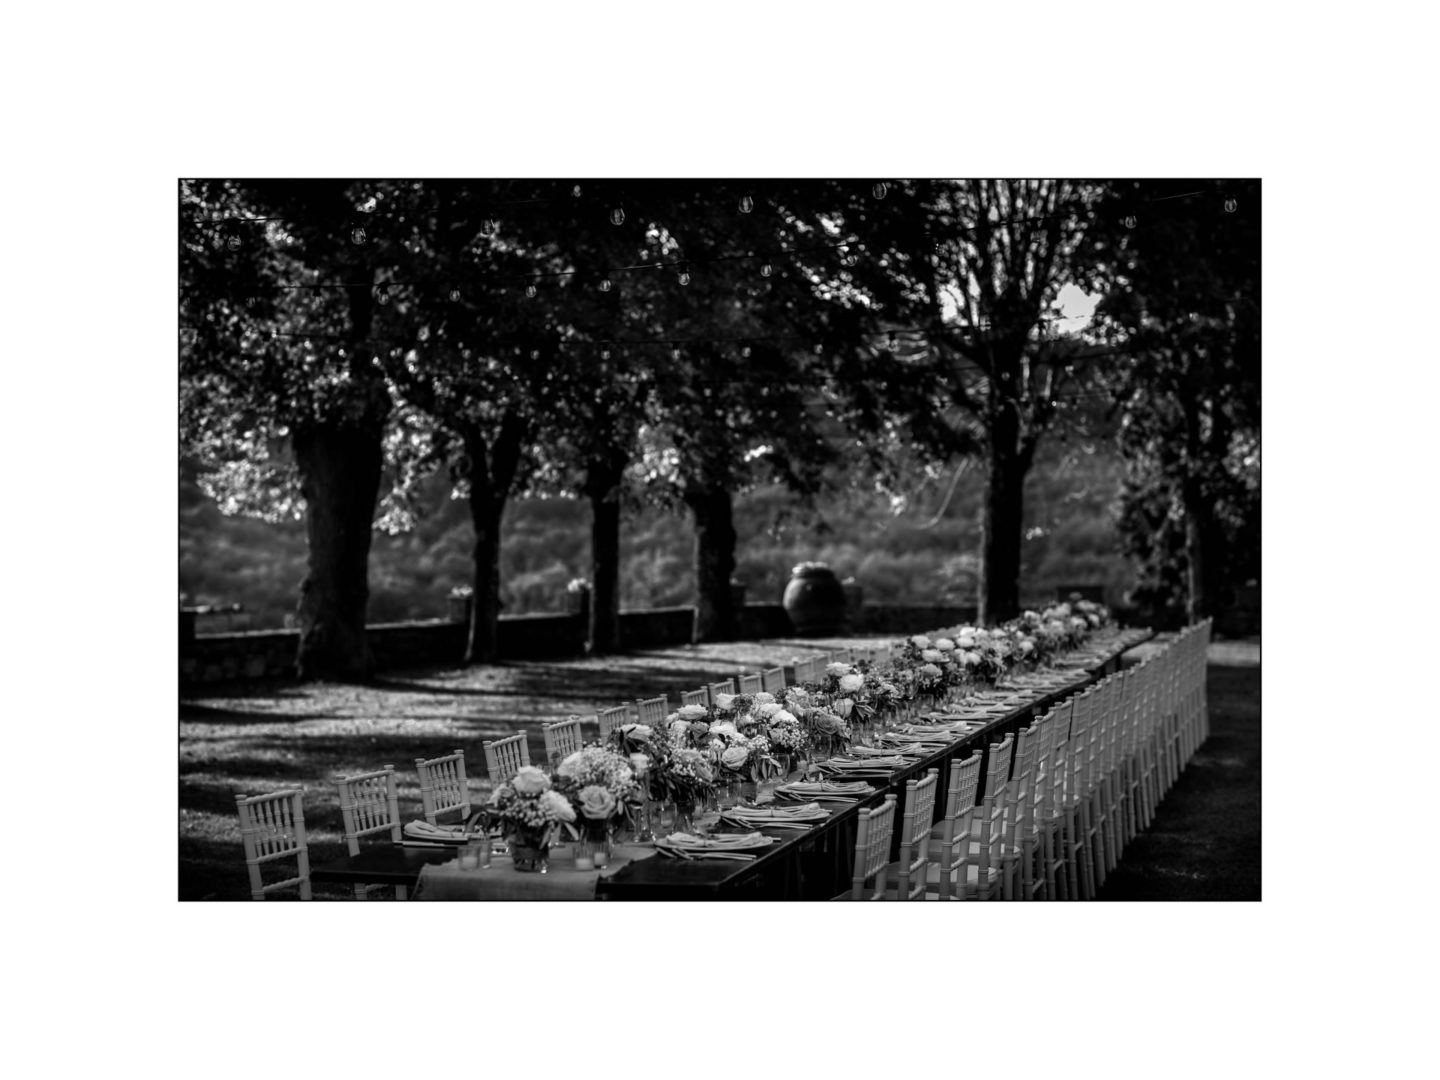 castello-di-meleto-david-bastianoni-photographer-00033 :: Black and white wedding_ Castello di Meleto :: Luxury wedding photography - 32 :: castello-di-meleto-david-bastianoni-photographer-00033